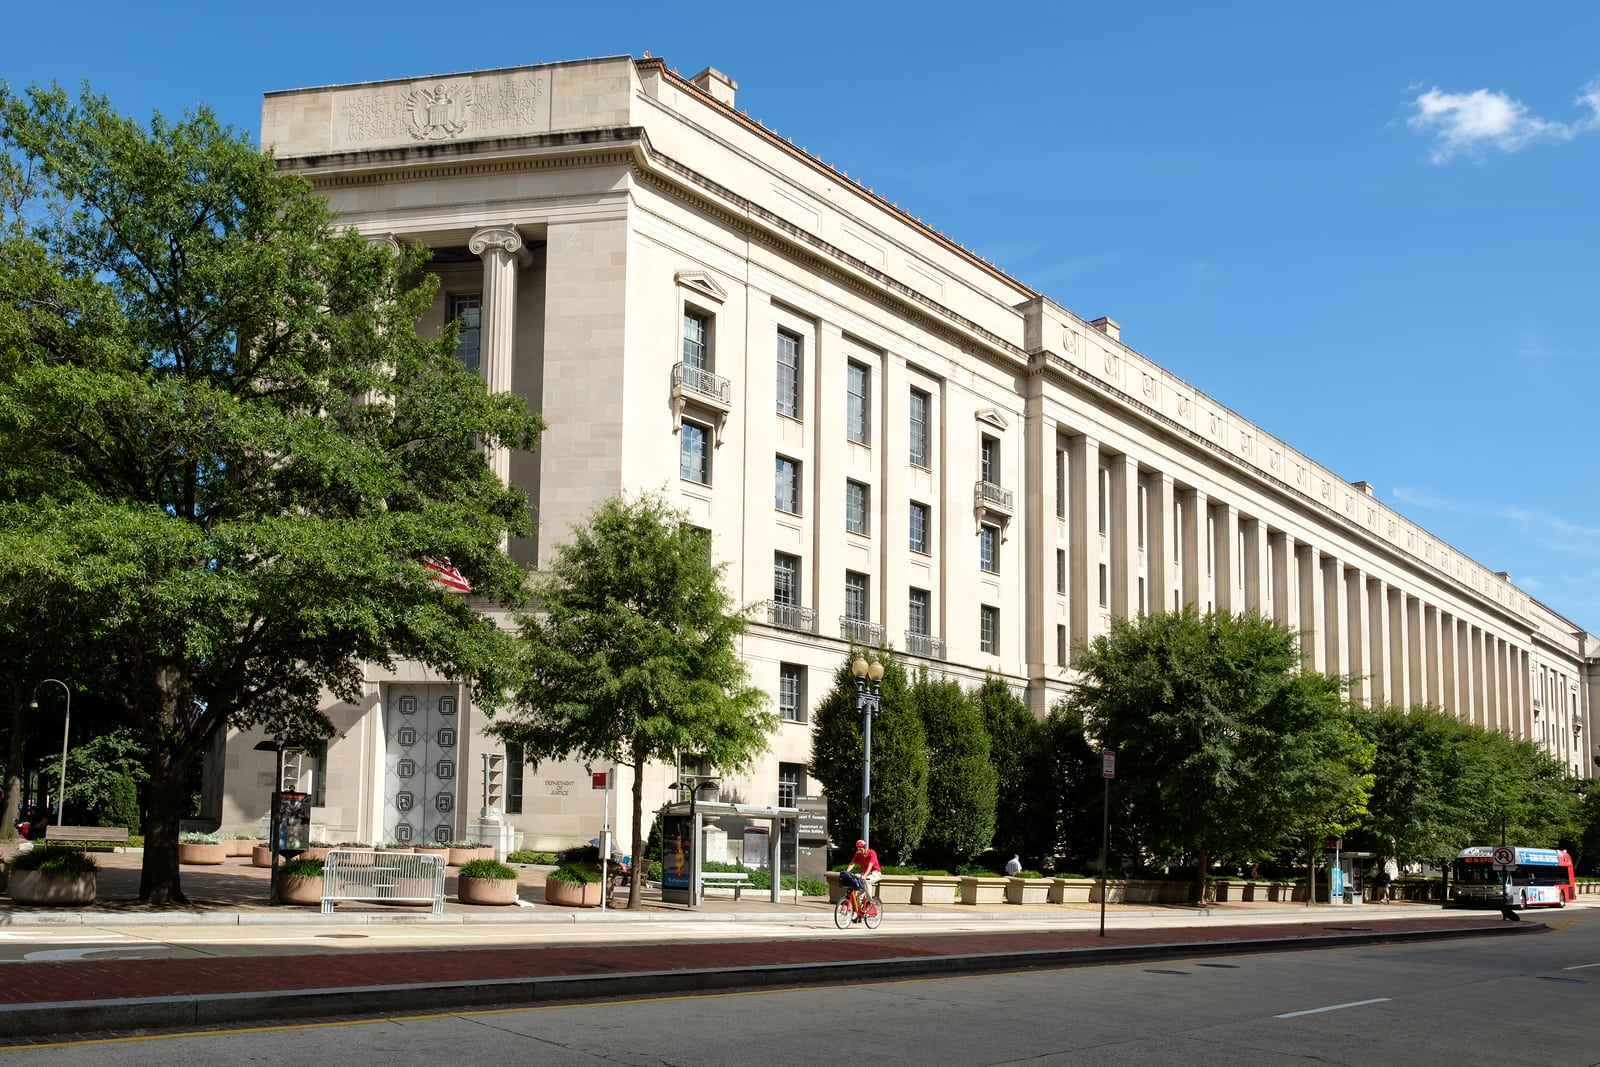 Tennessee News: Columbia Man, Jacob Michael Goethe Facing Federal Firearms and Drug Charges